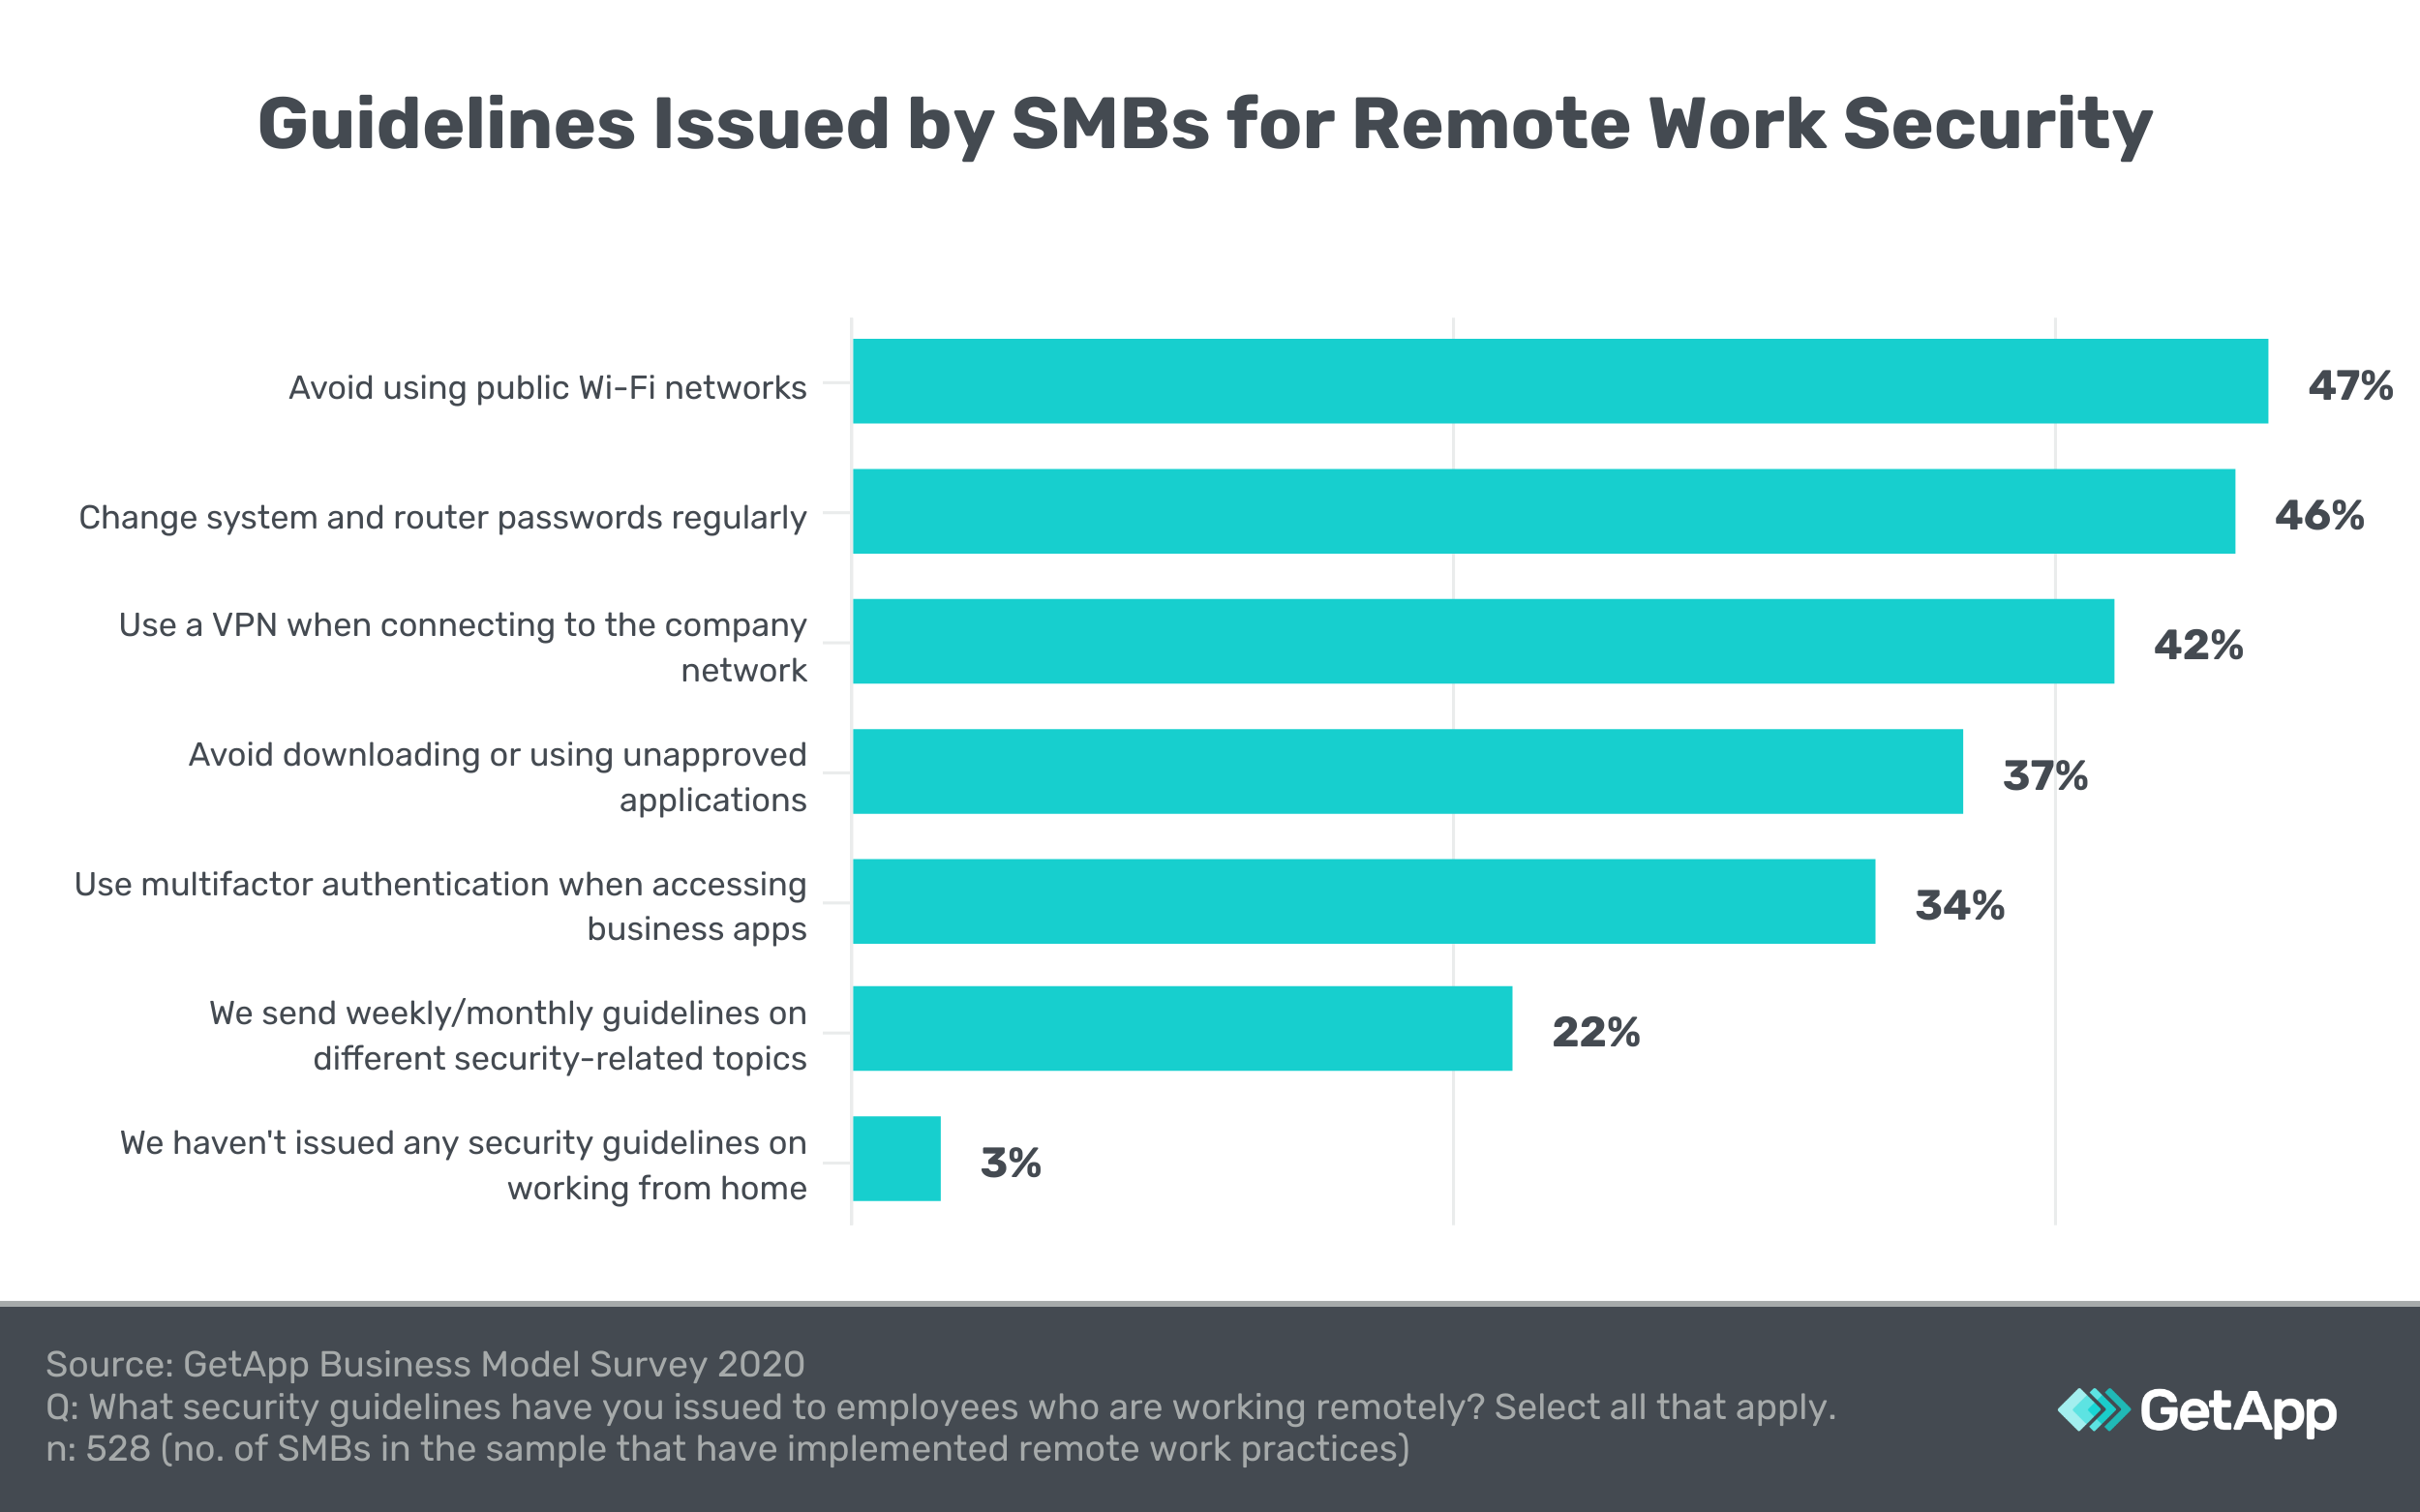 Guidelines issued by SMBs for remote work security